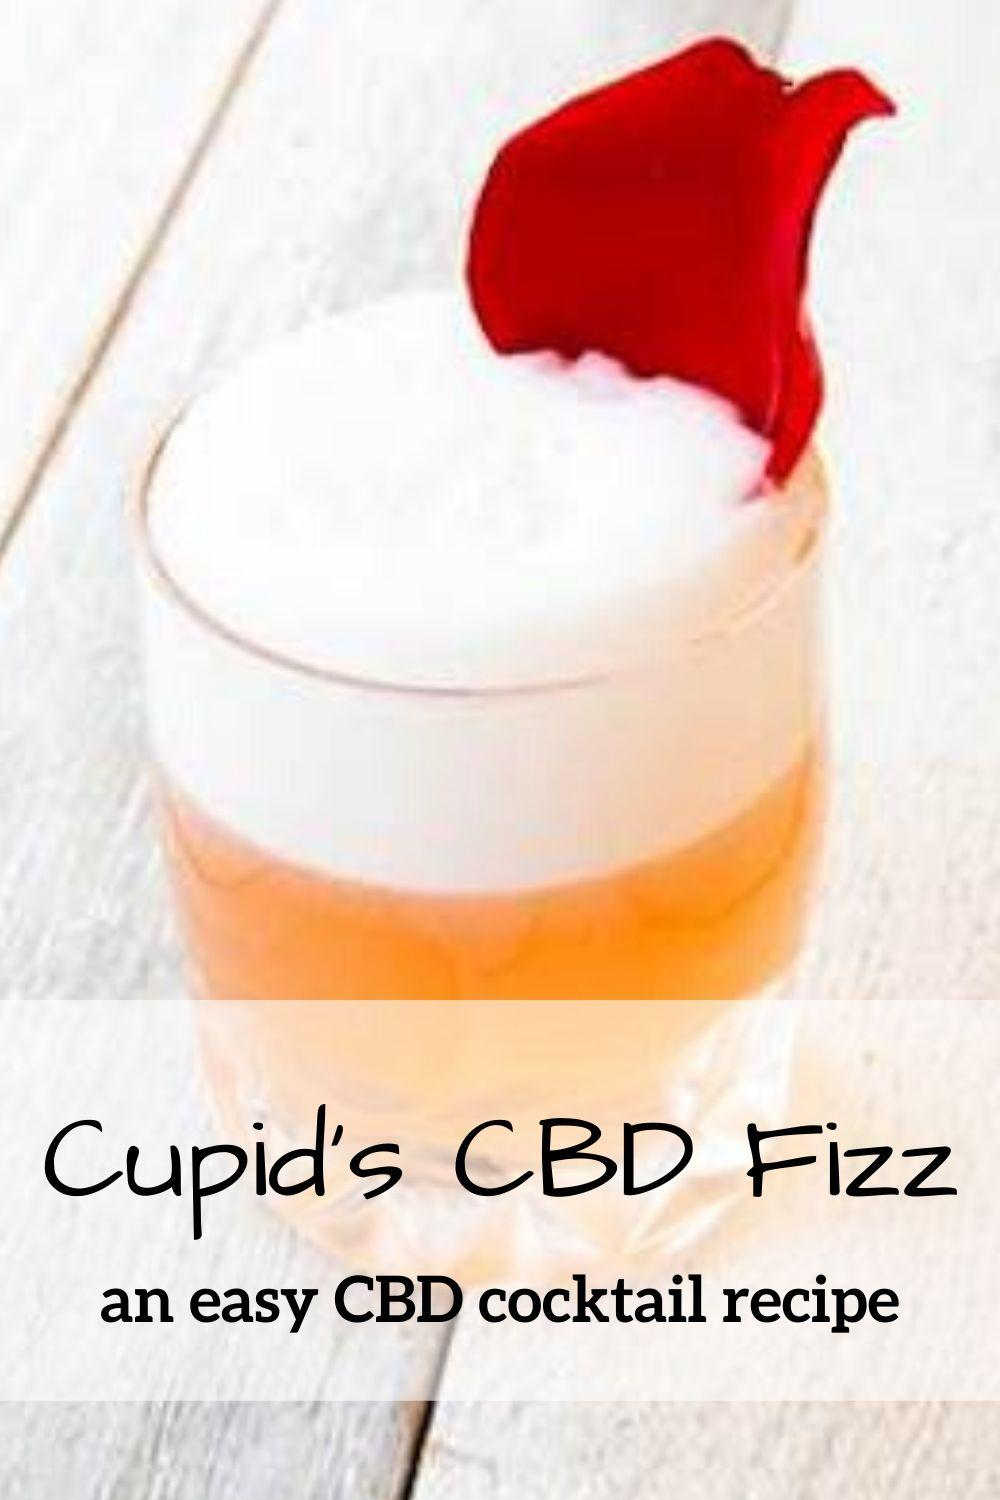 Cupid's Fizz CBD Cocktail